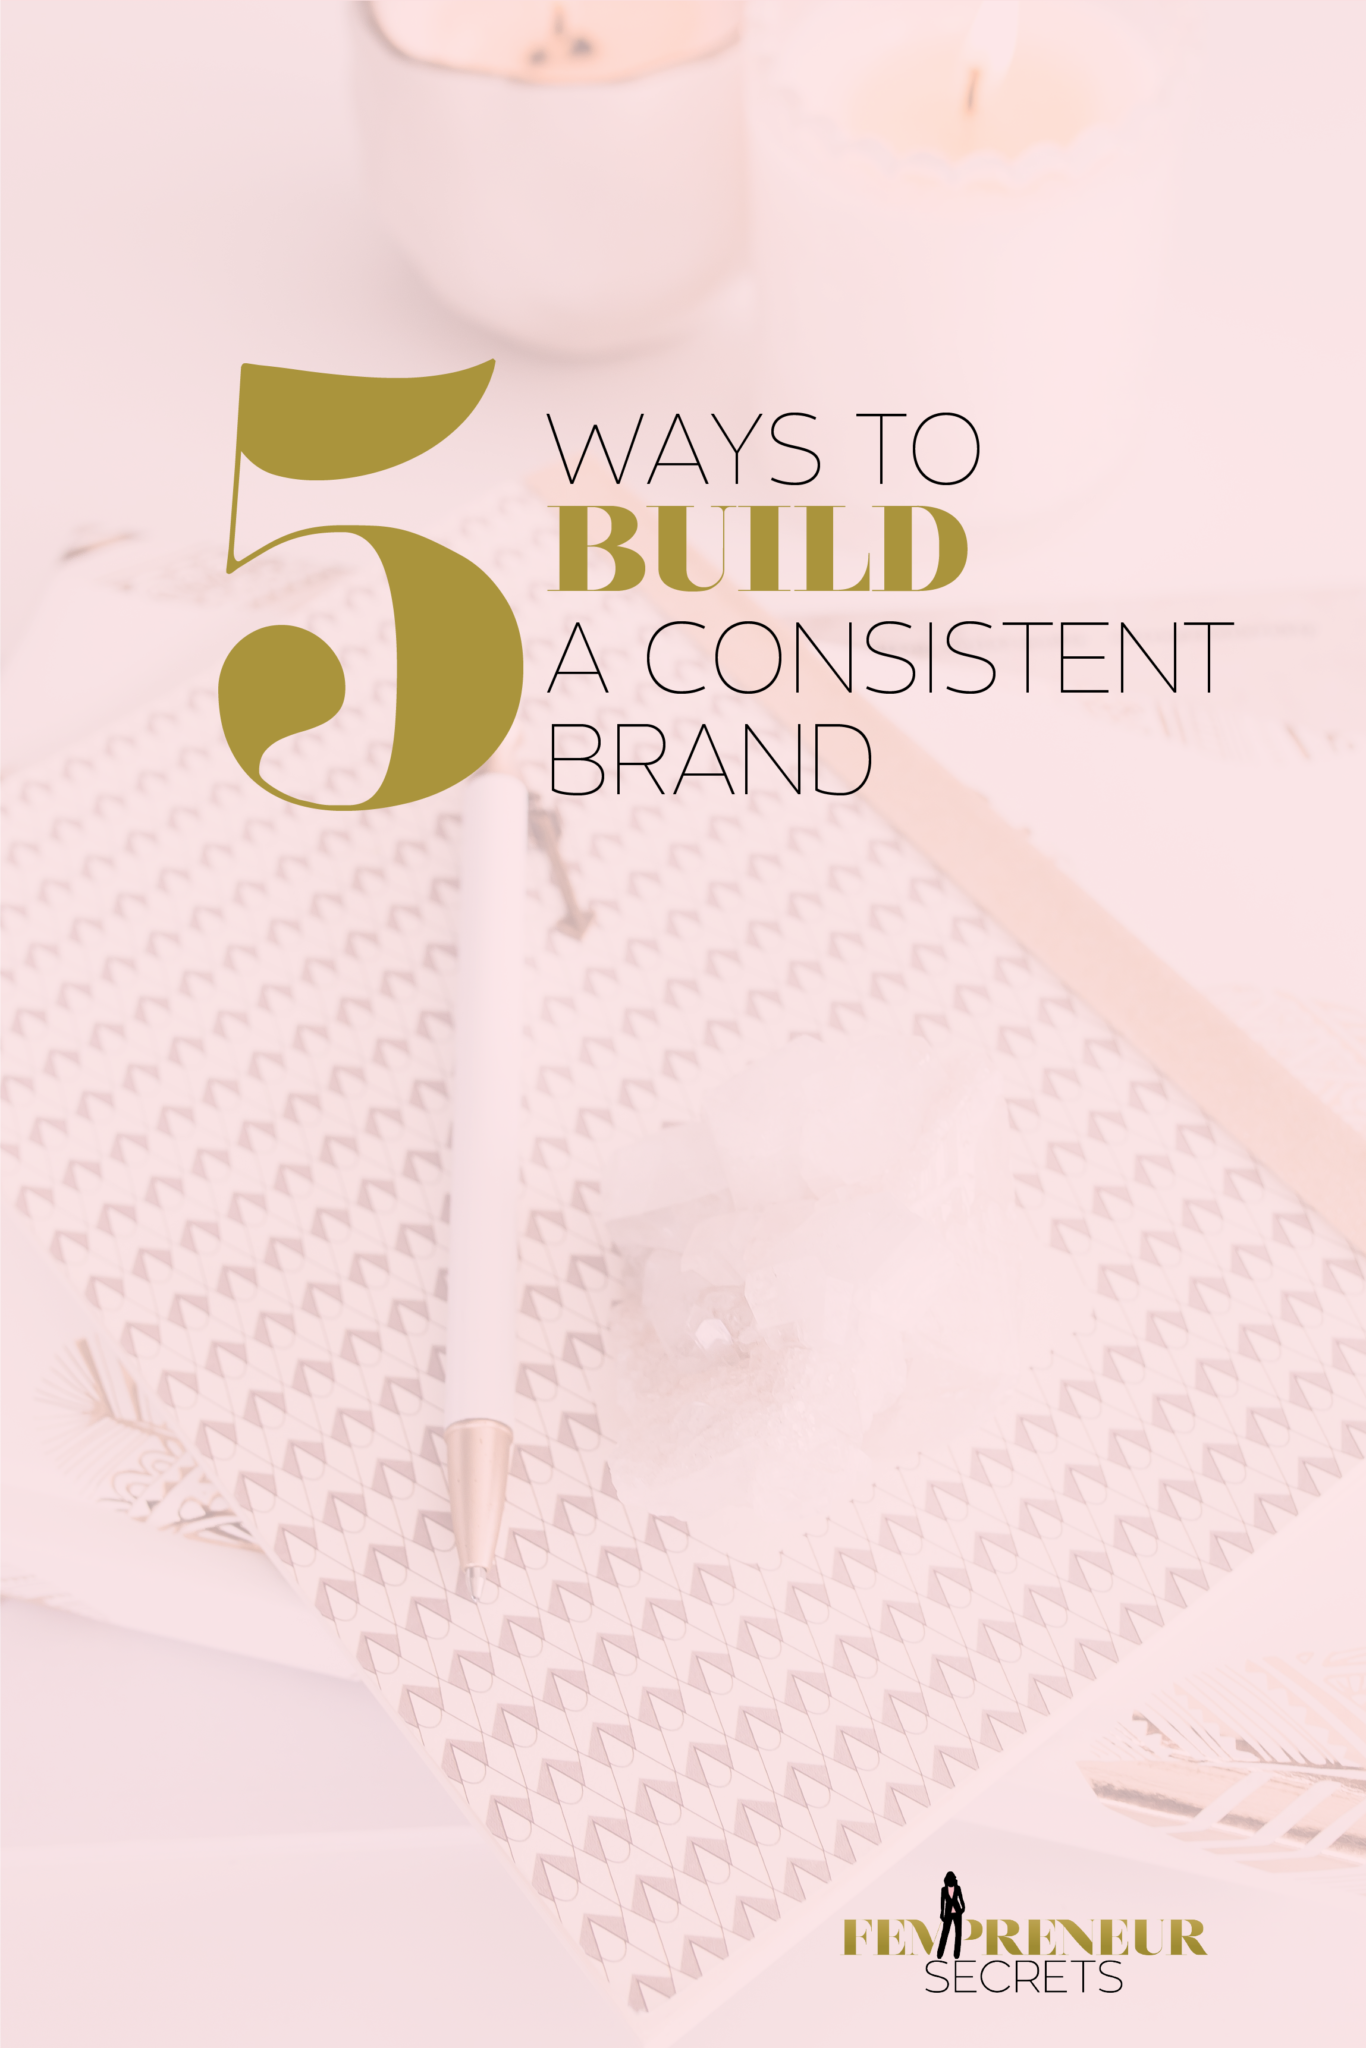 002-5-Ways-to-Build-a-Consistent-Brand_Pinterest-2.png